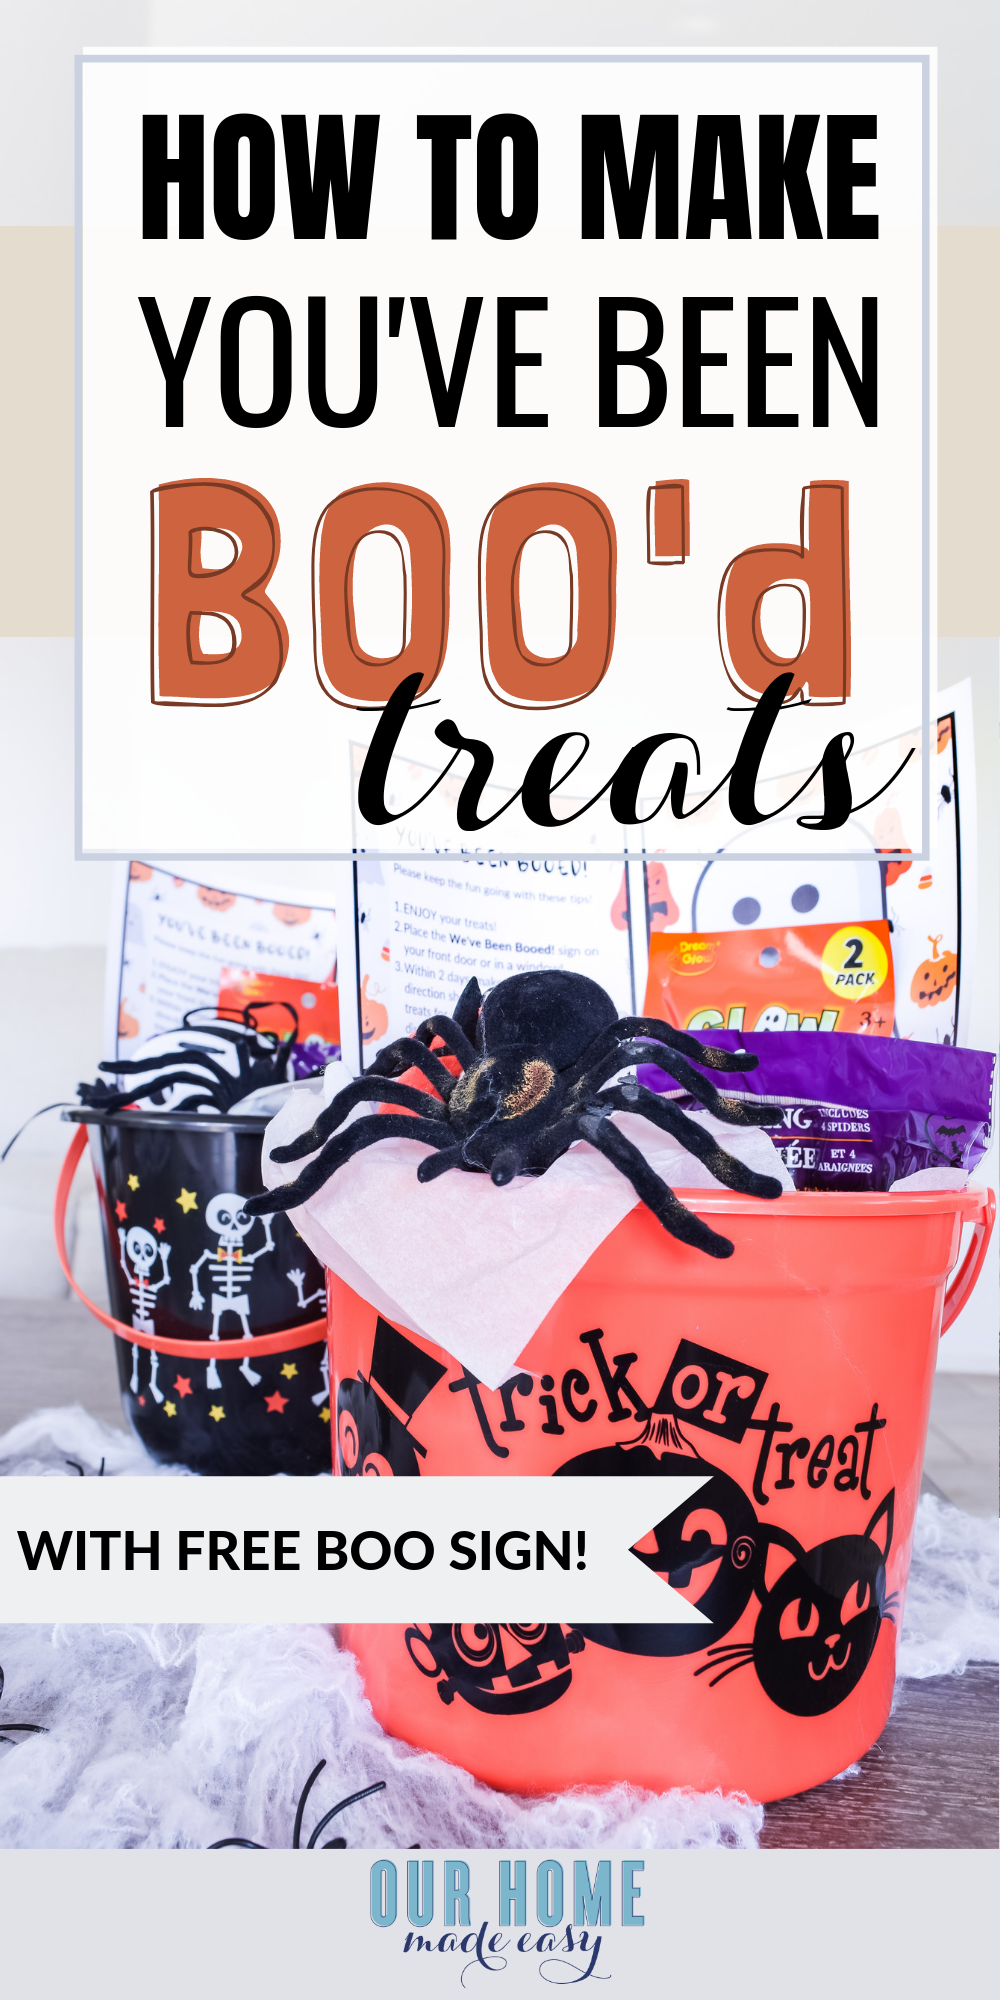 How to make You've Been Booed treat buckets! This Halloween activity is a great way to spread the joy and fun of the Halloween season with friends, neighbors, and family.